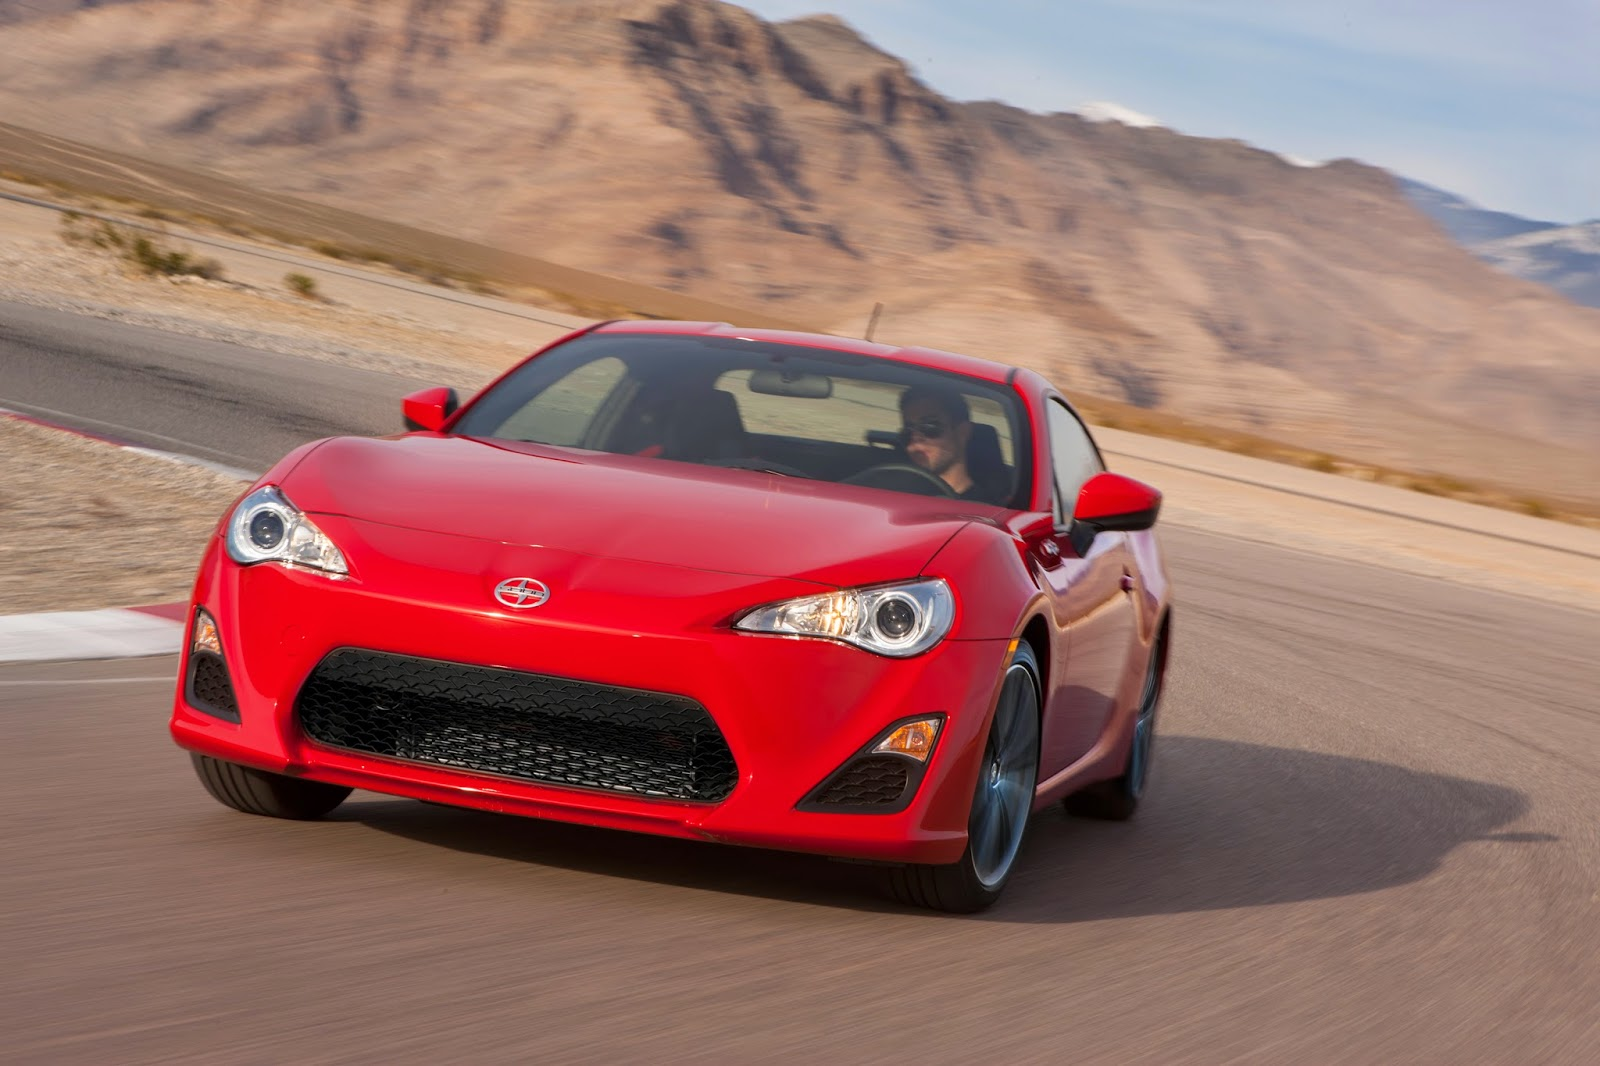 2014 Scion FR-S front view